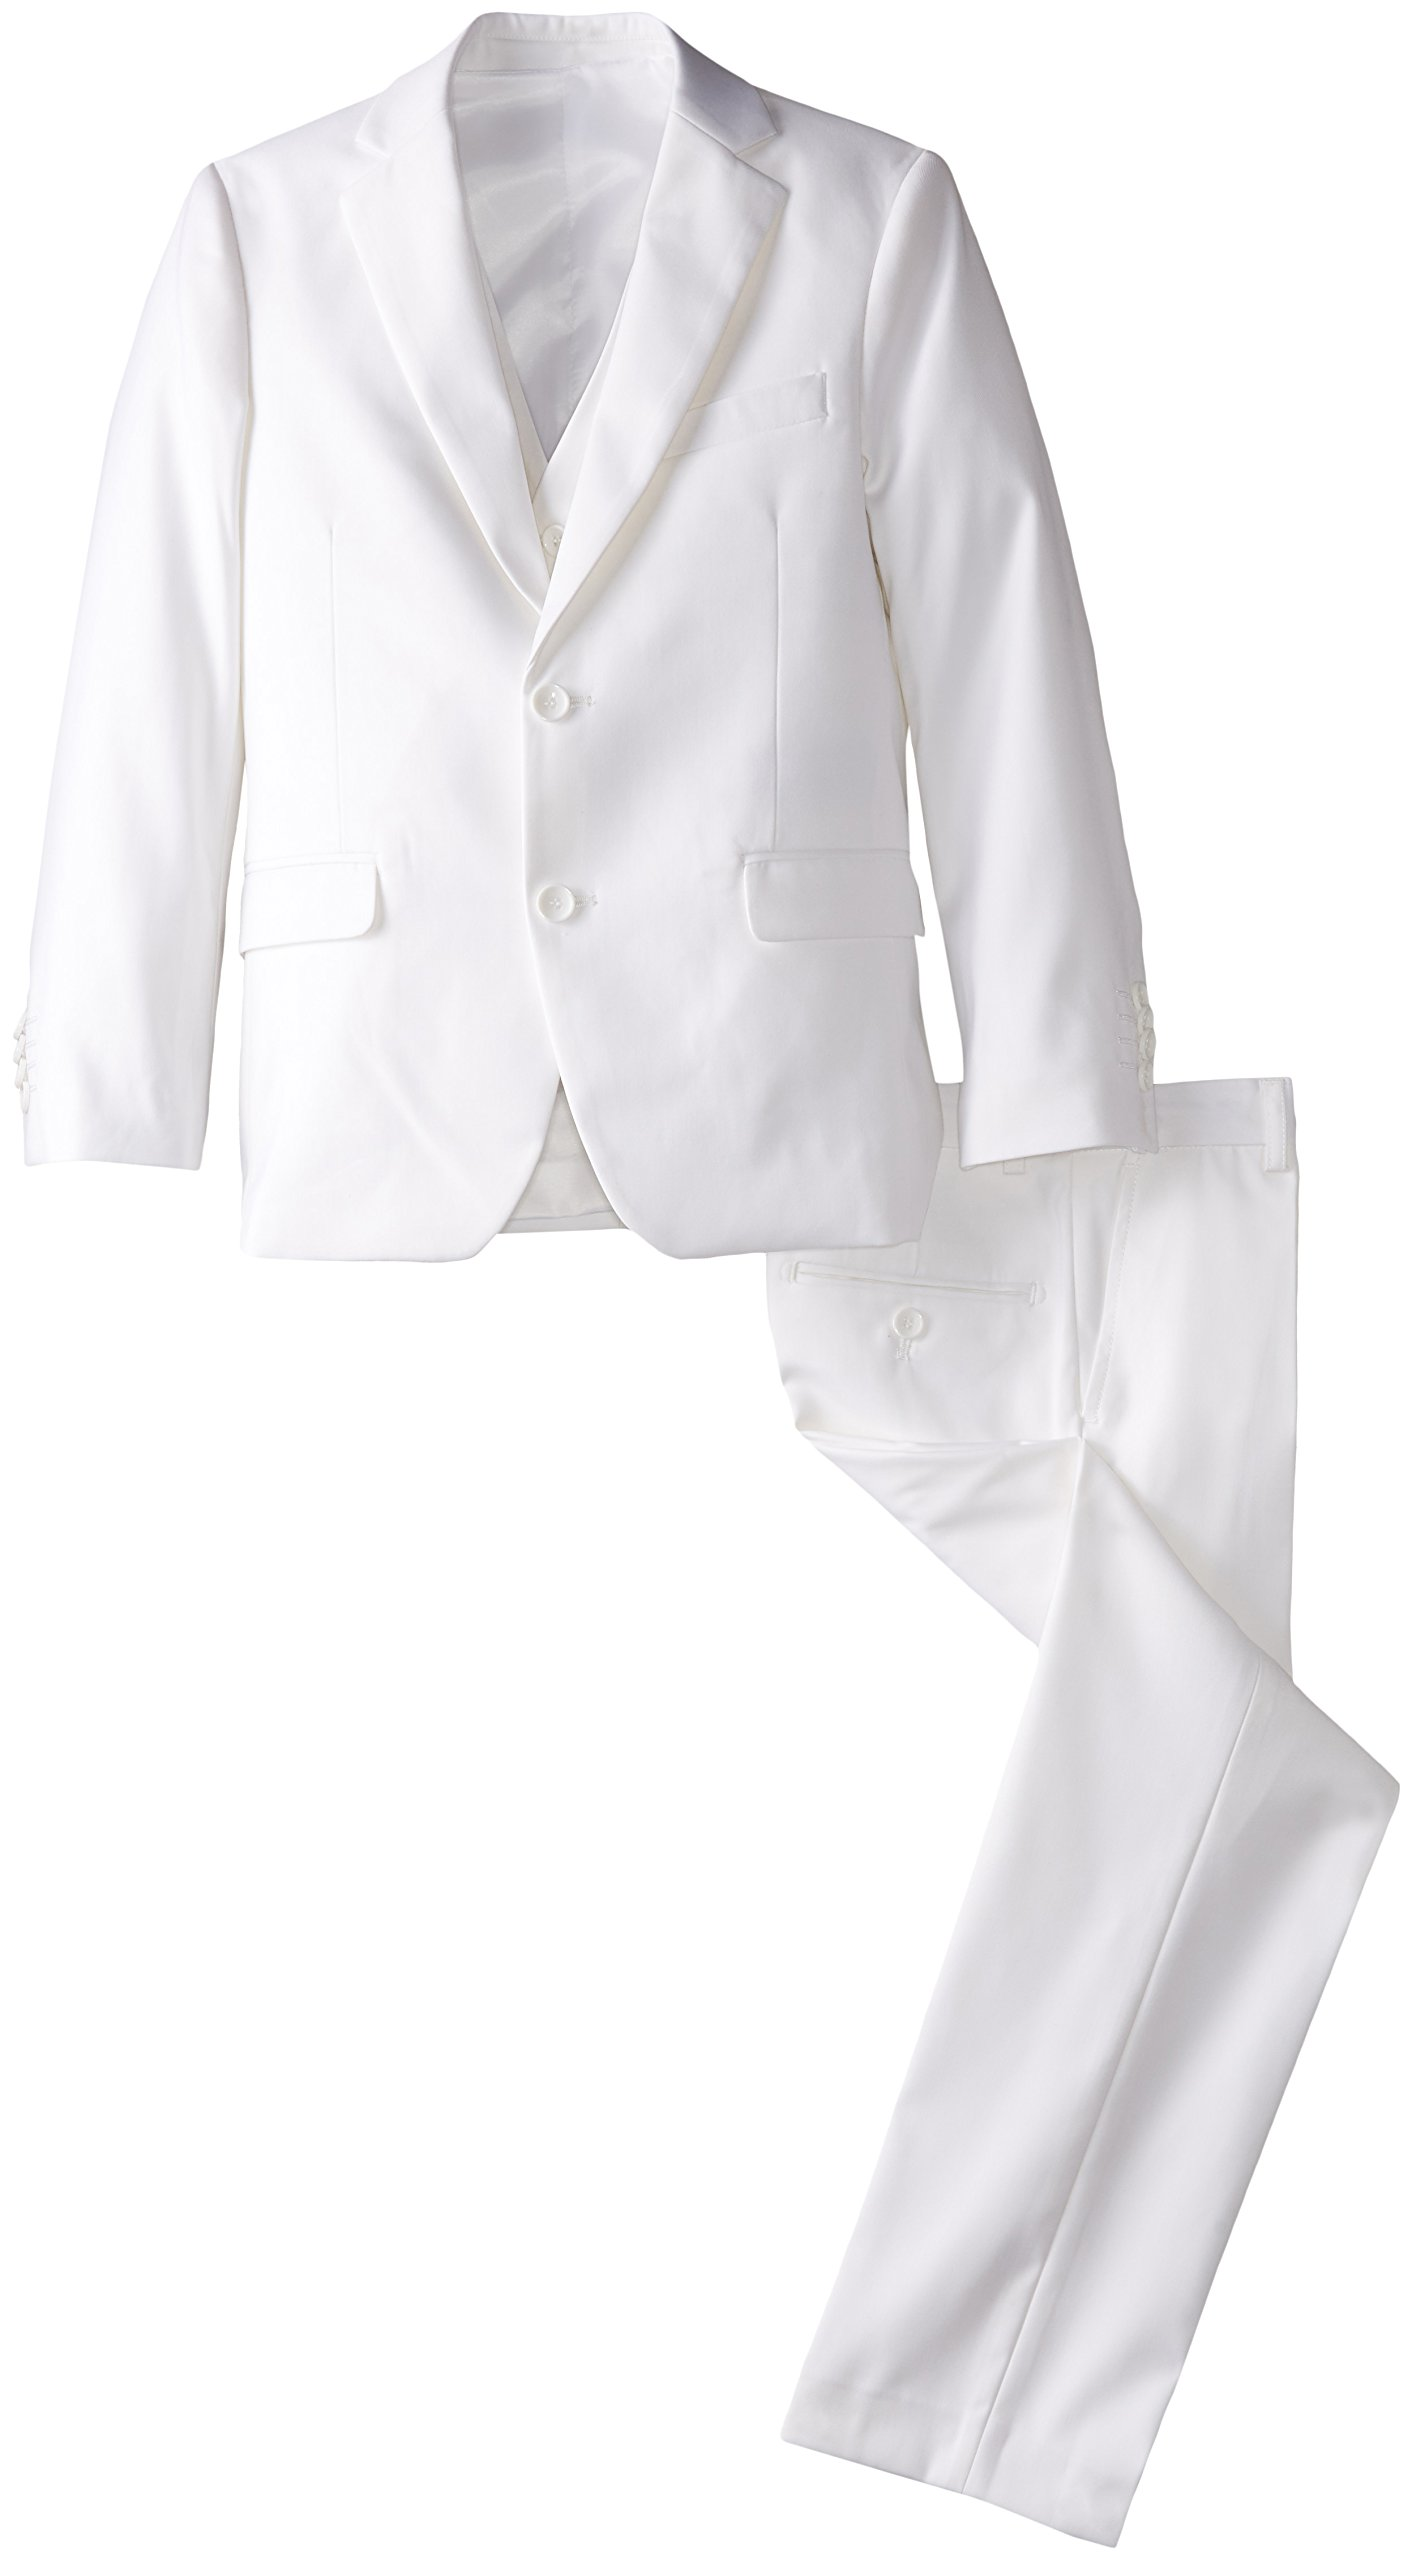 American Exchange Big Boys' Boys Solid Vested Suit, White, 18